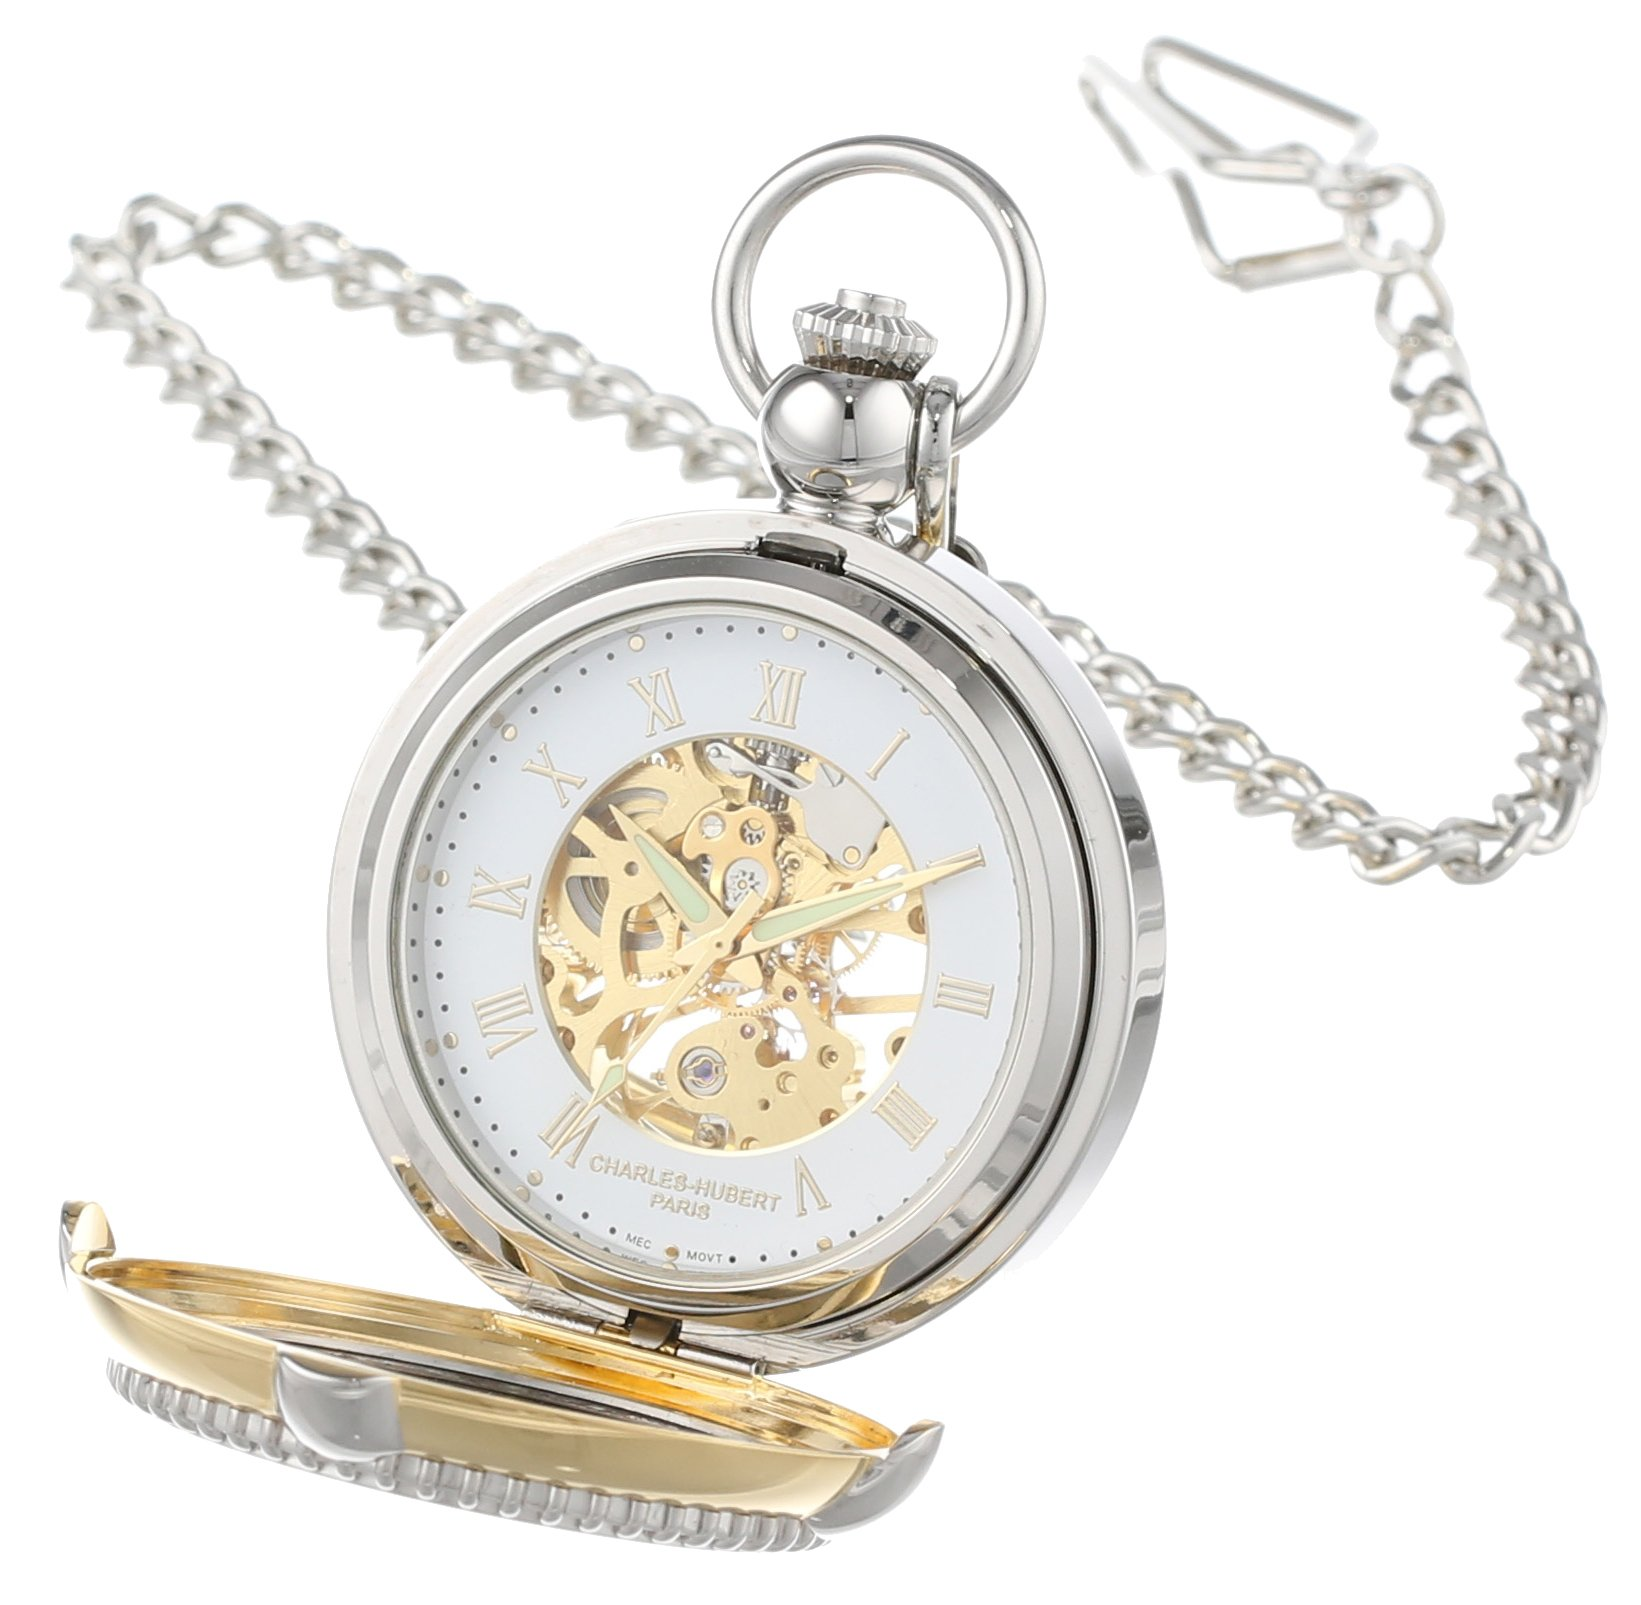 Charles Hubert 3846 Two-Tone Mechanical Picture Frame Pocket Watch by CHARLES-HUBERT PARIS